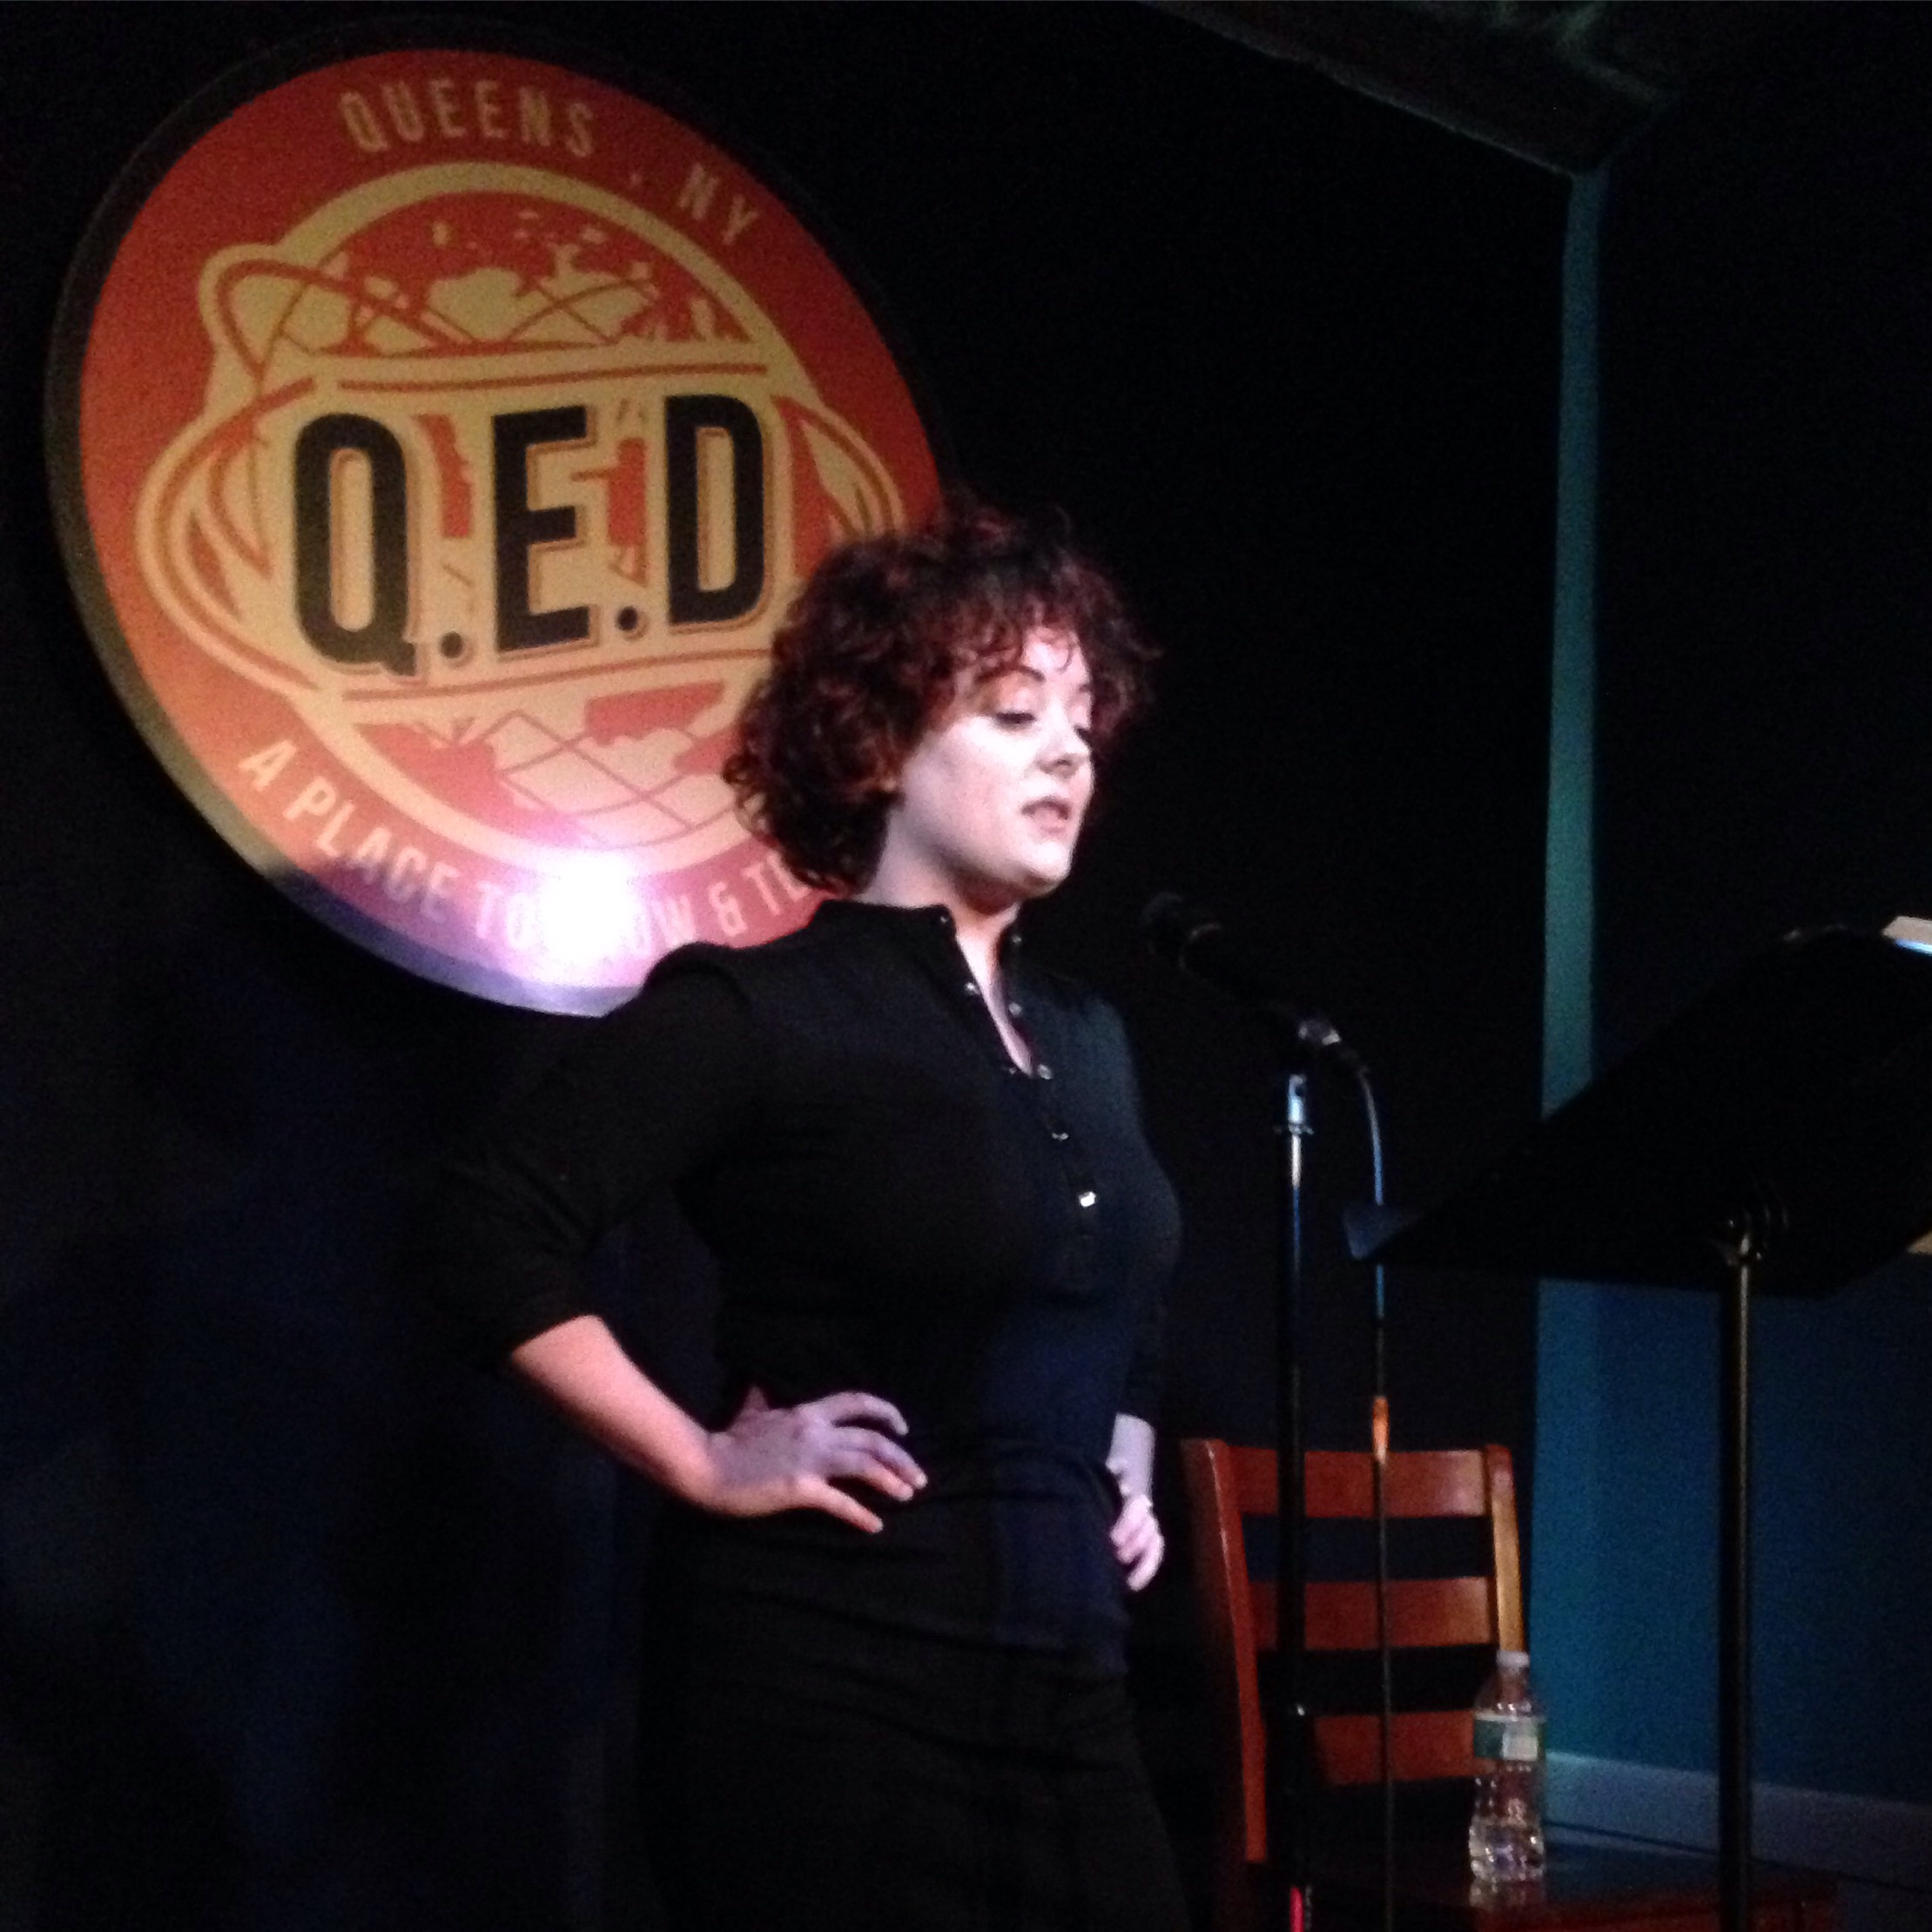 Sarah Riccio reads at Line Break #1 at Q.E.D. in Astoria, Queens, March 5, 2016